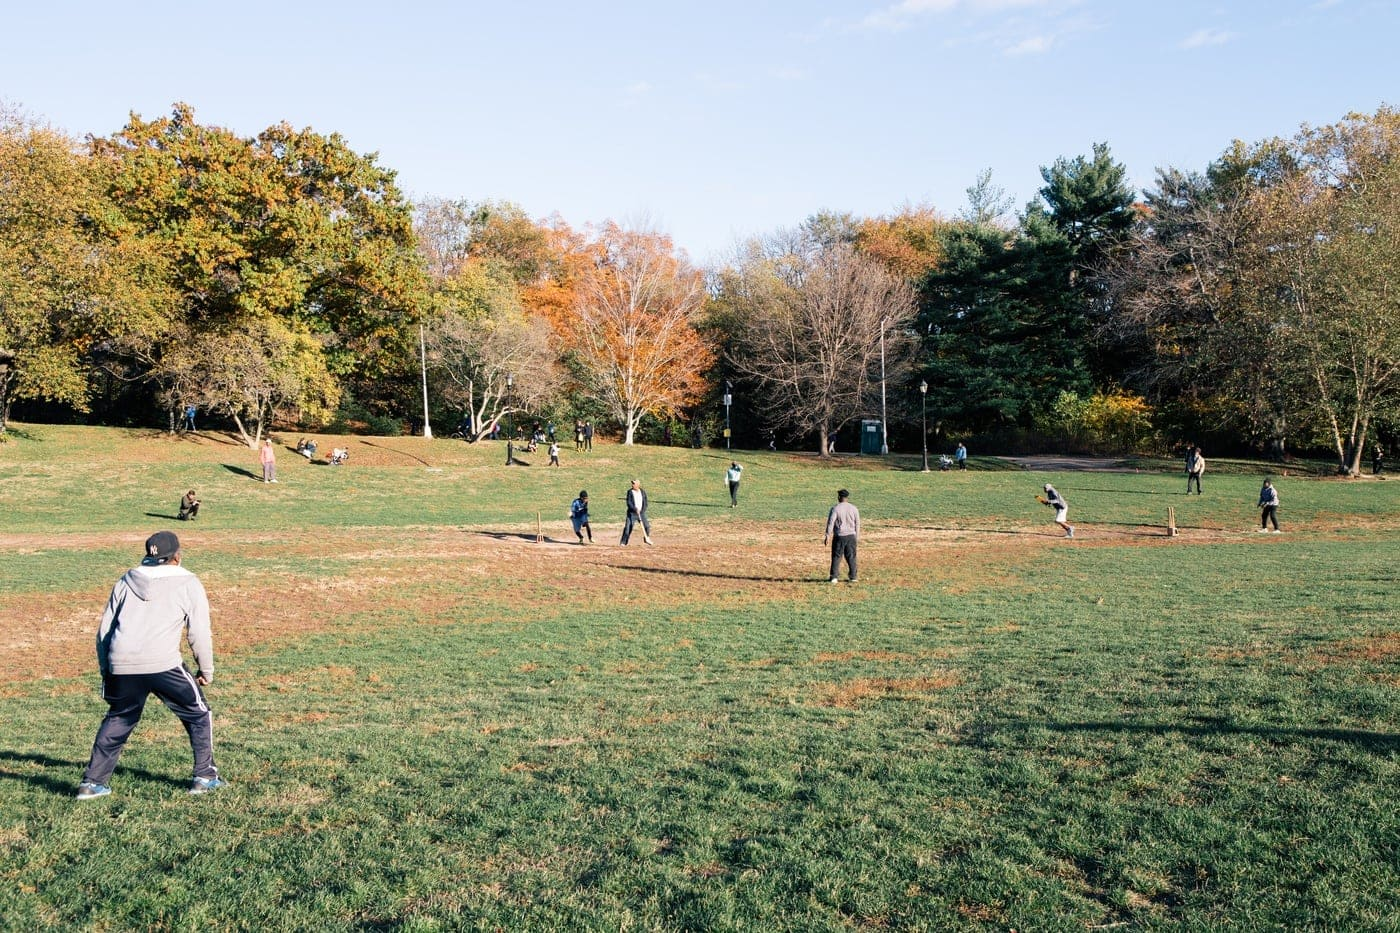 Playing cricket in Prospect park New York City